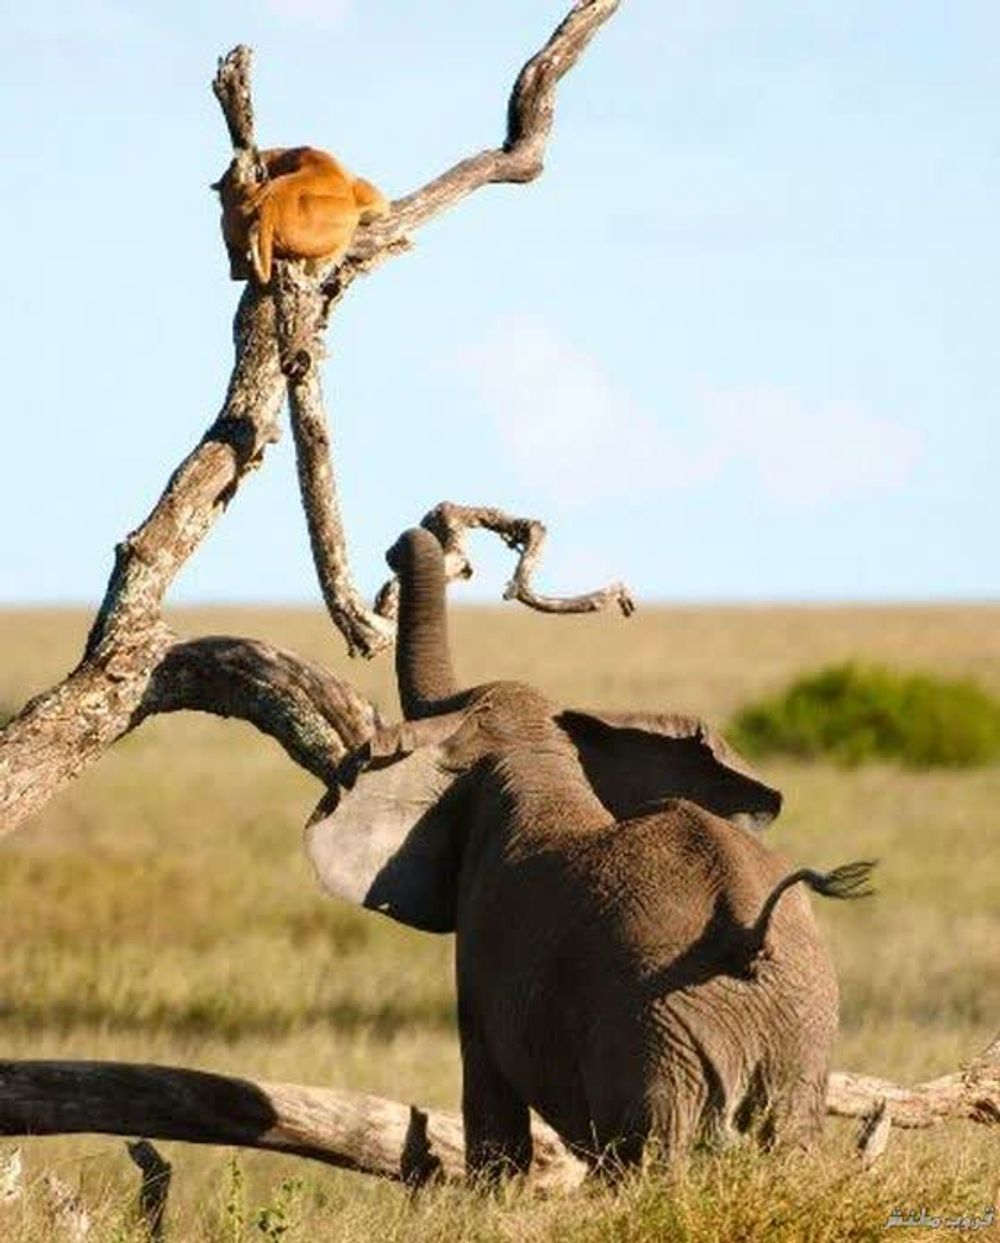 title: Animals grappling